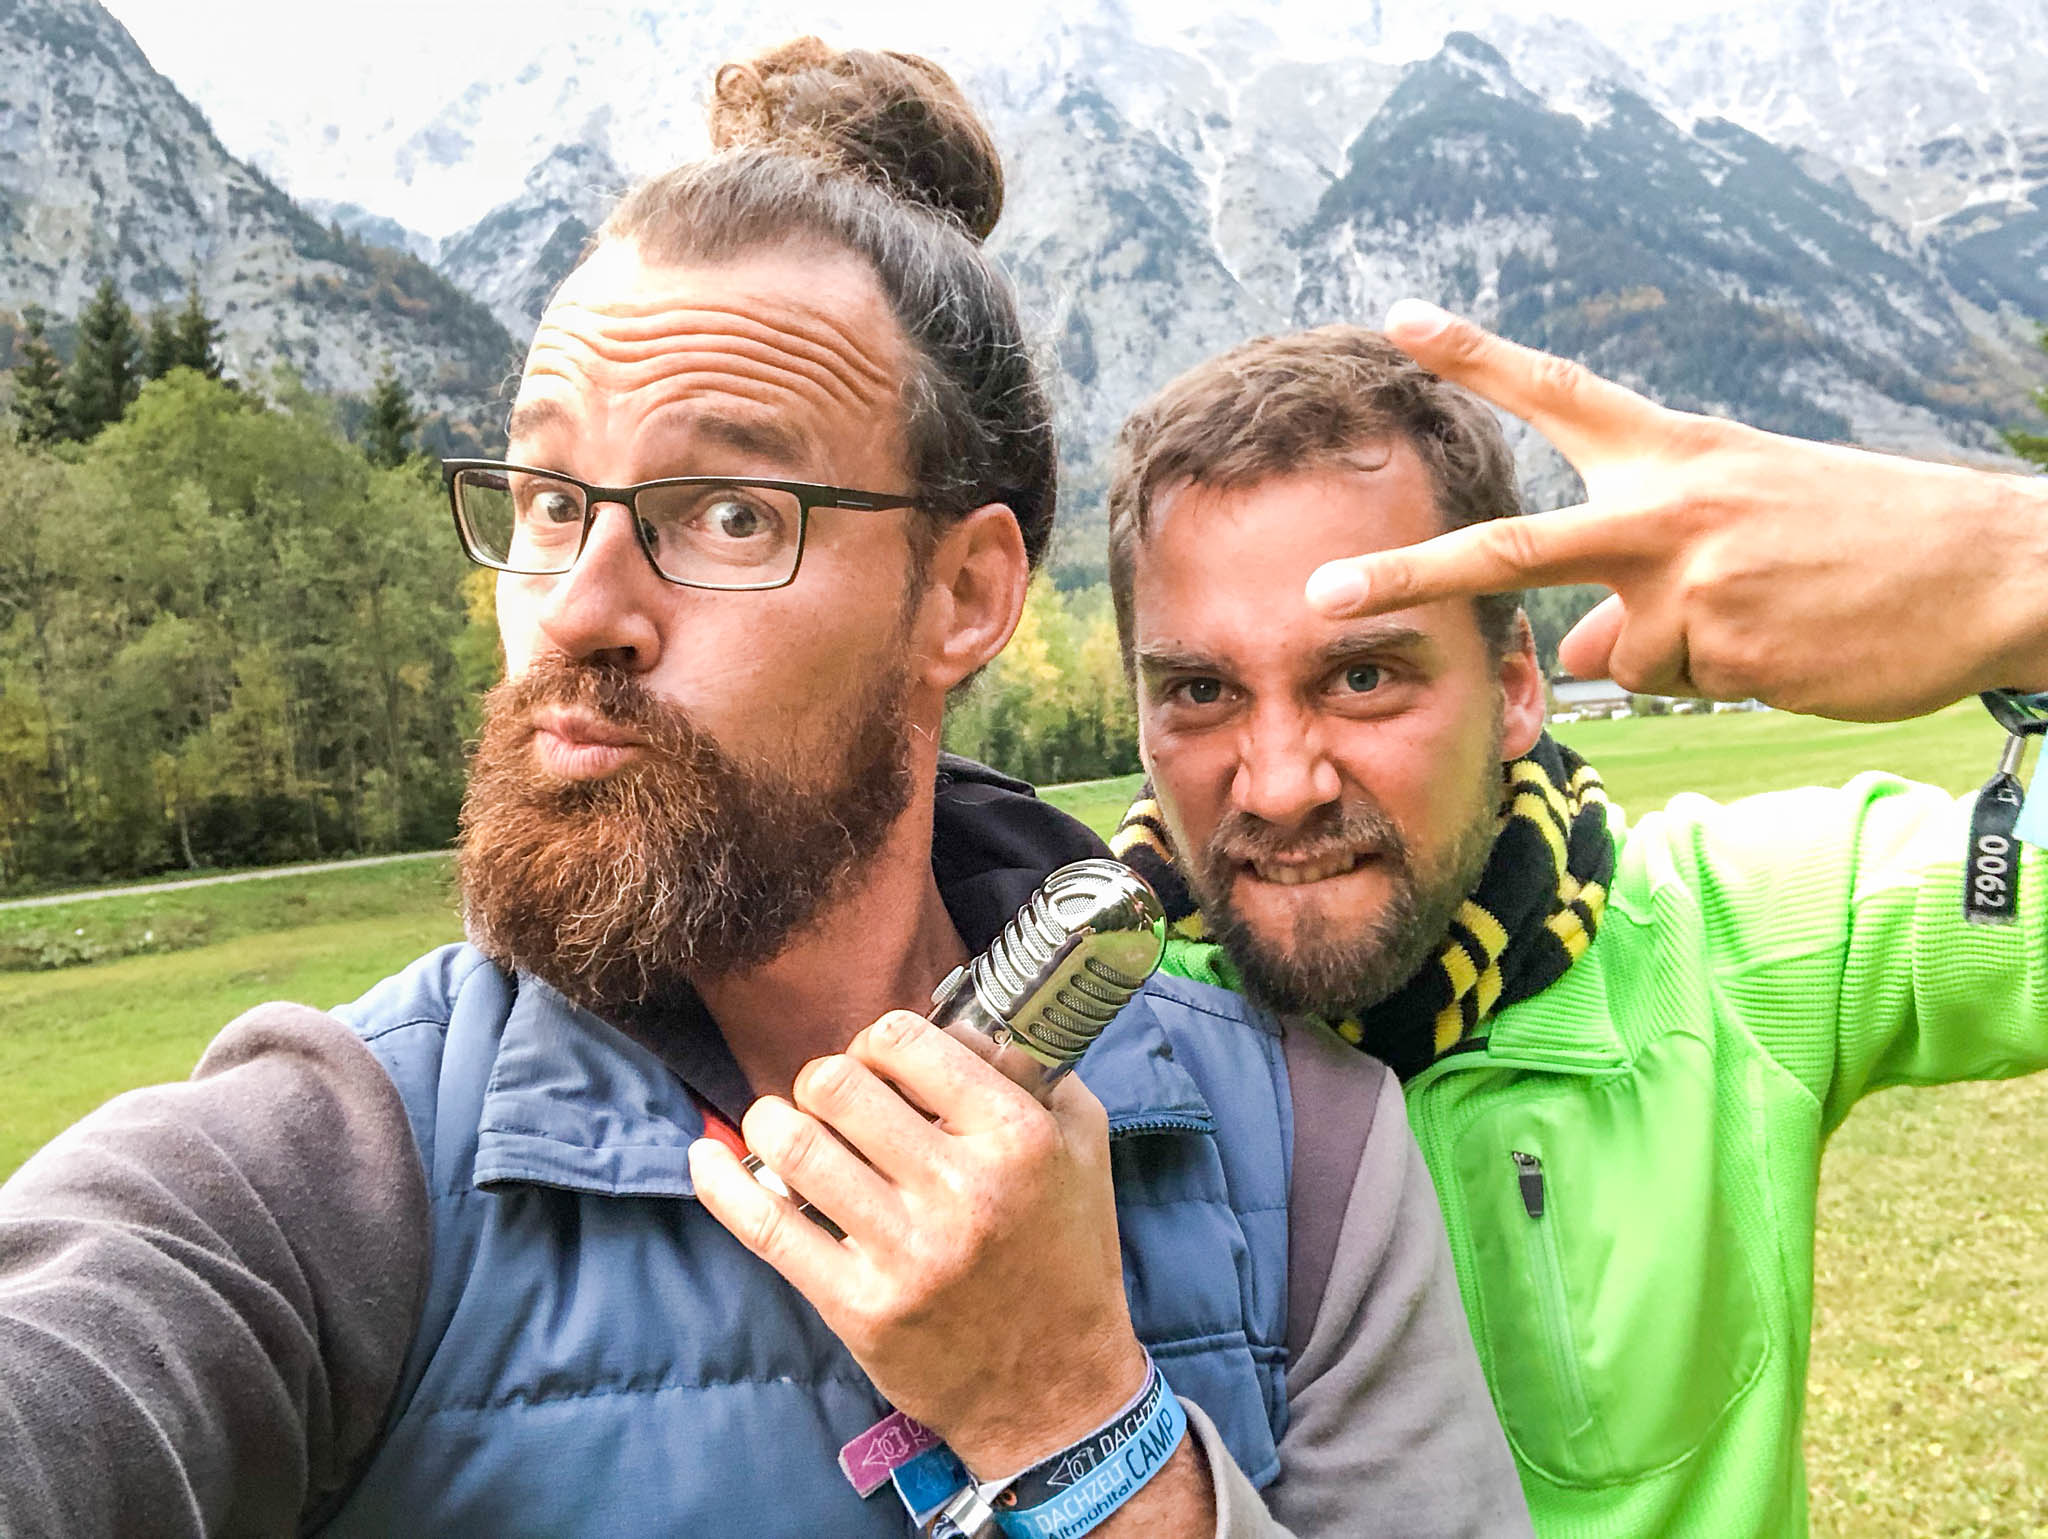 IMG_6397_camper-nomads-podcast-lukas-buerger-personal-training-thilo-vogel-vogel-adventure_006